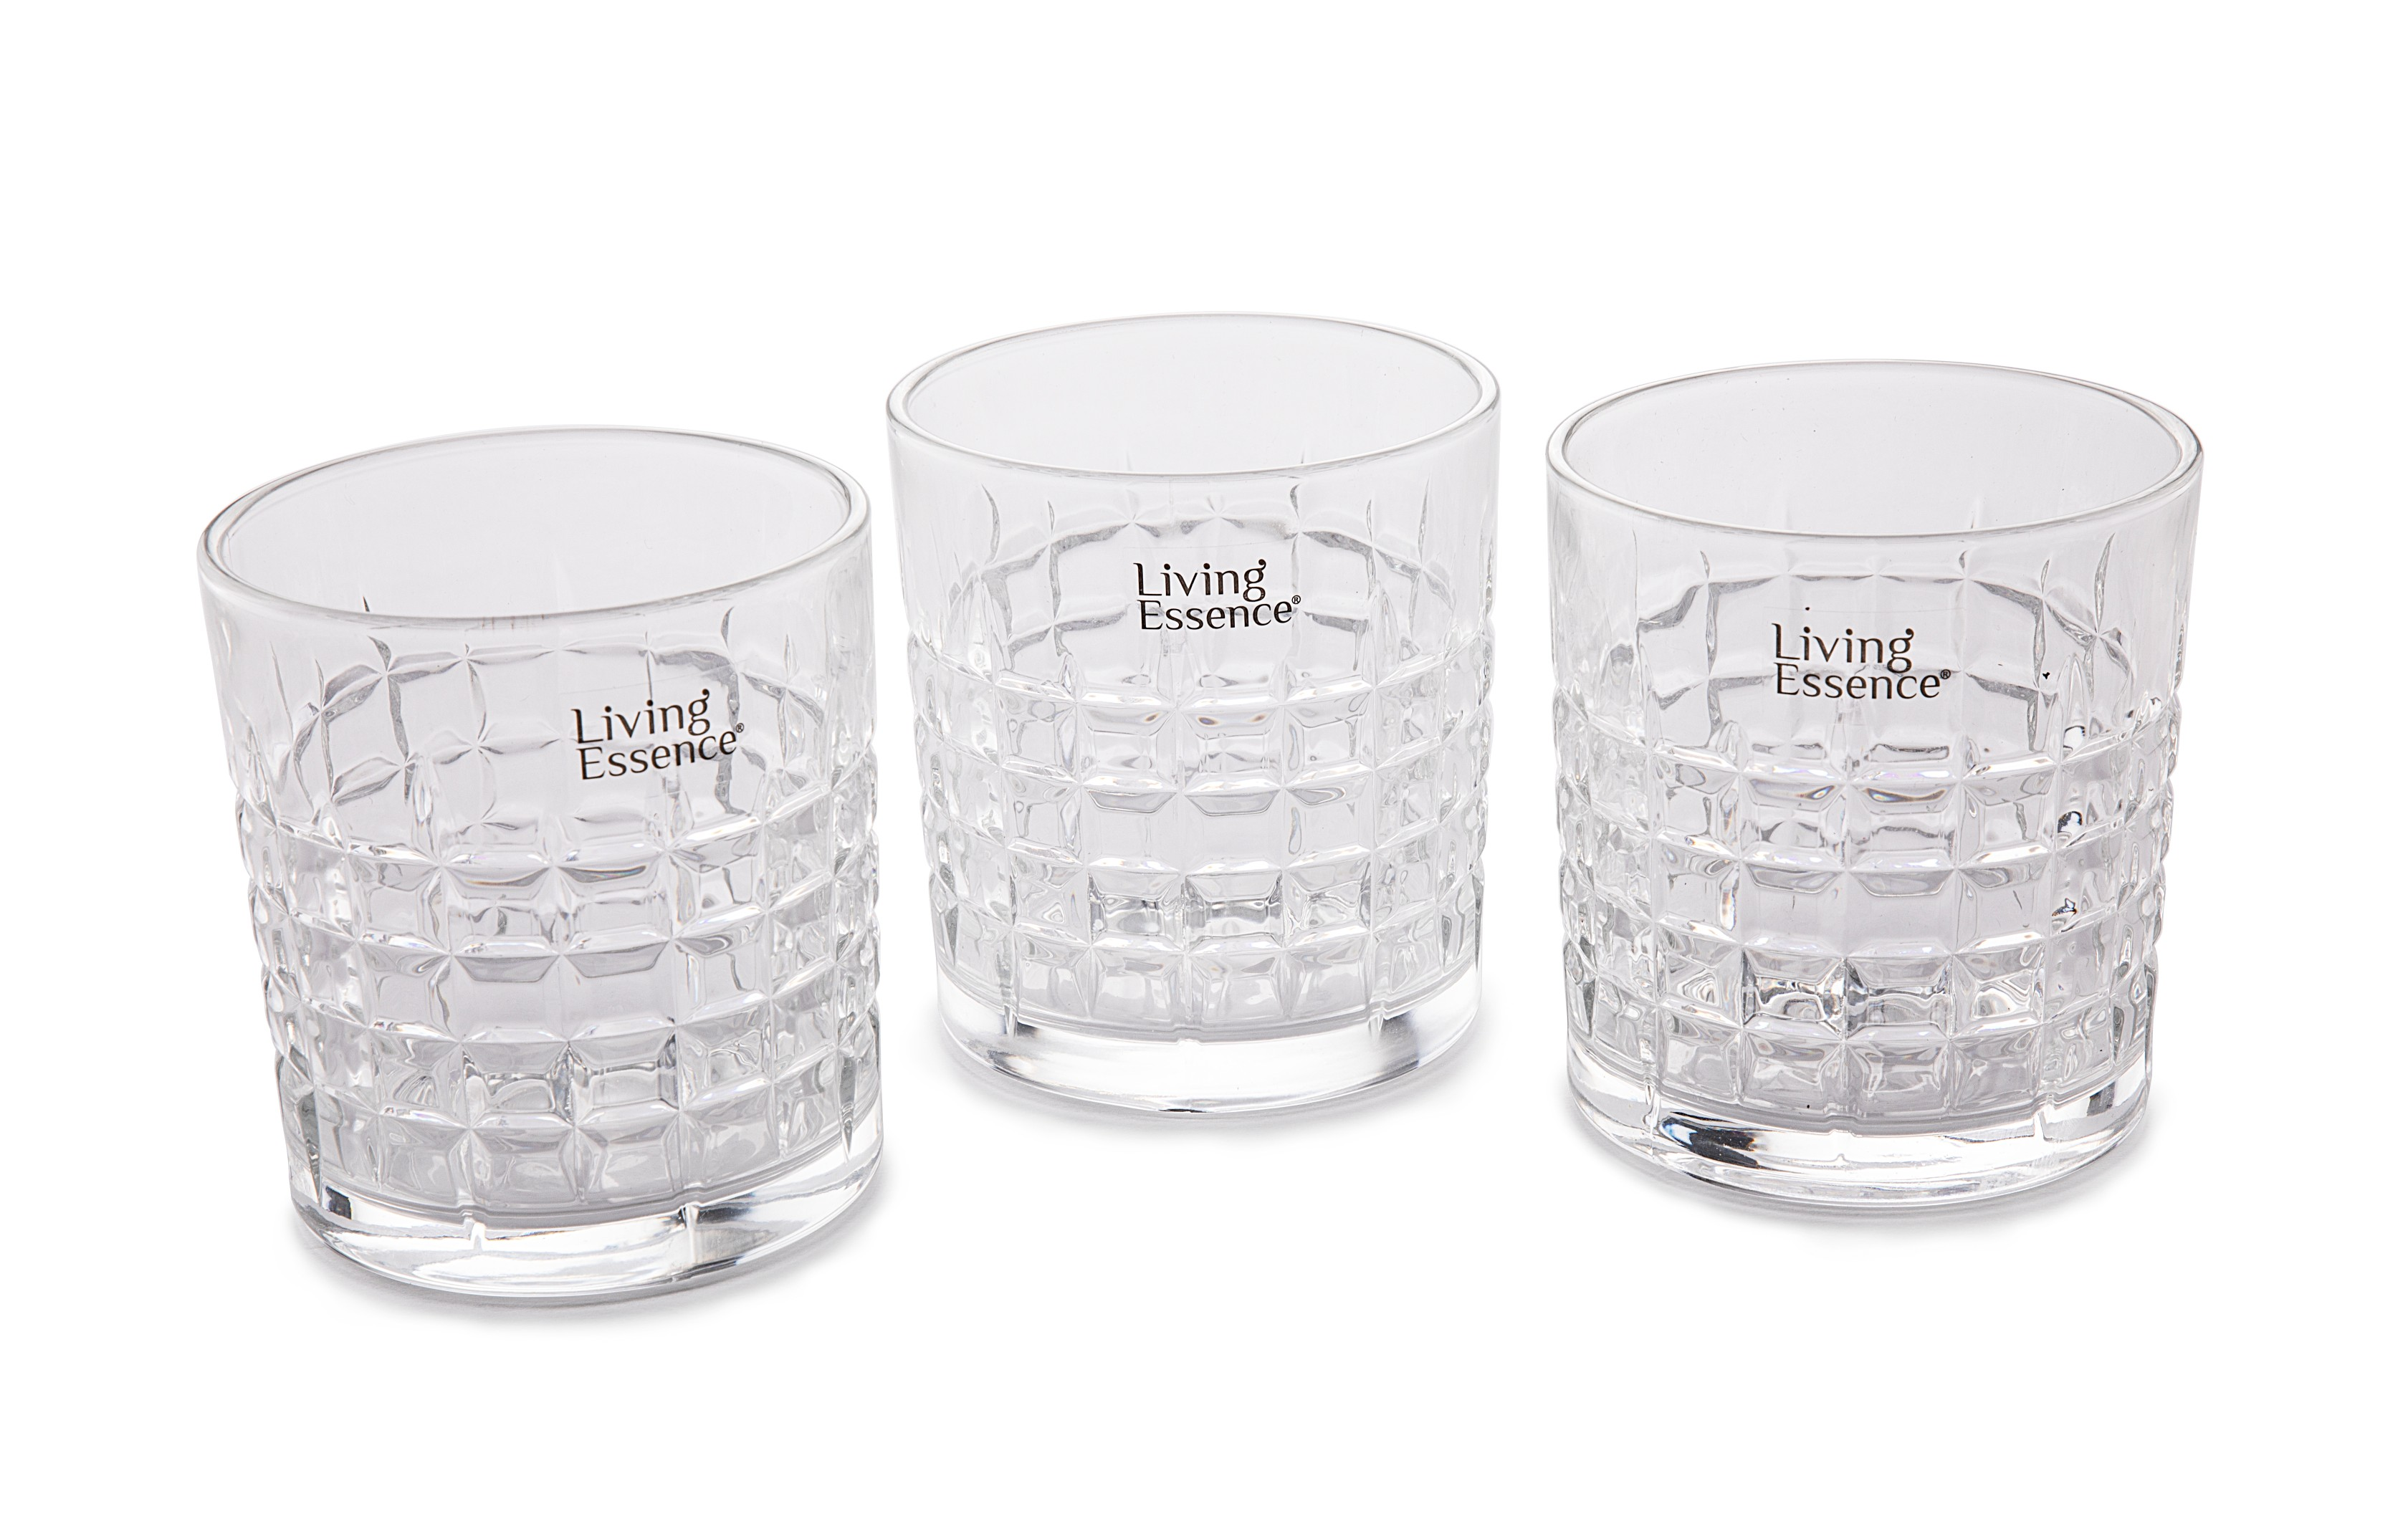 LE FLORENCE WHISKY TUMBLERS SET OF 6 Glass Glasses & Tumblers in Transparent Colour by Living Essence